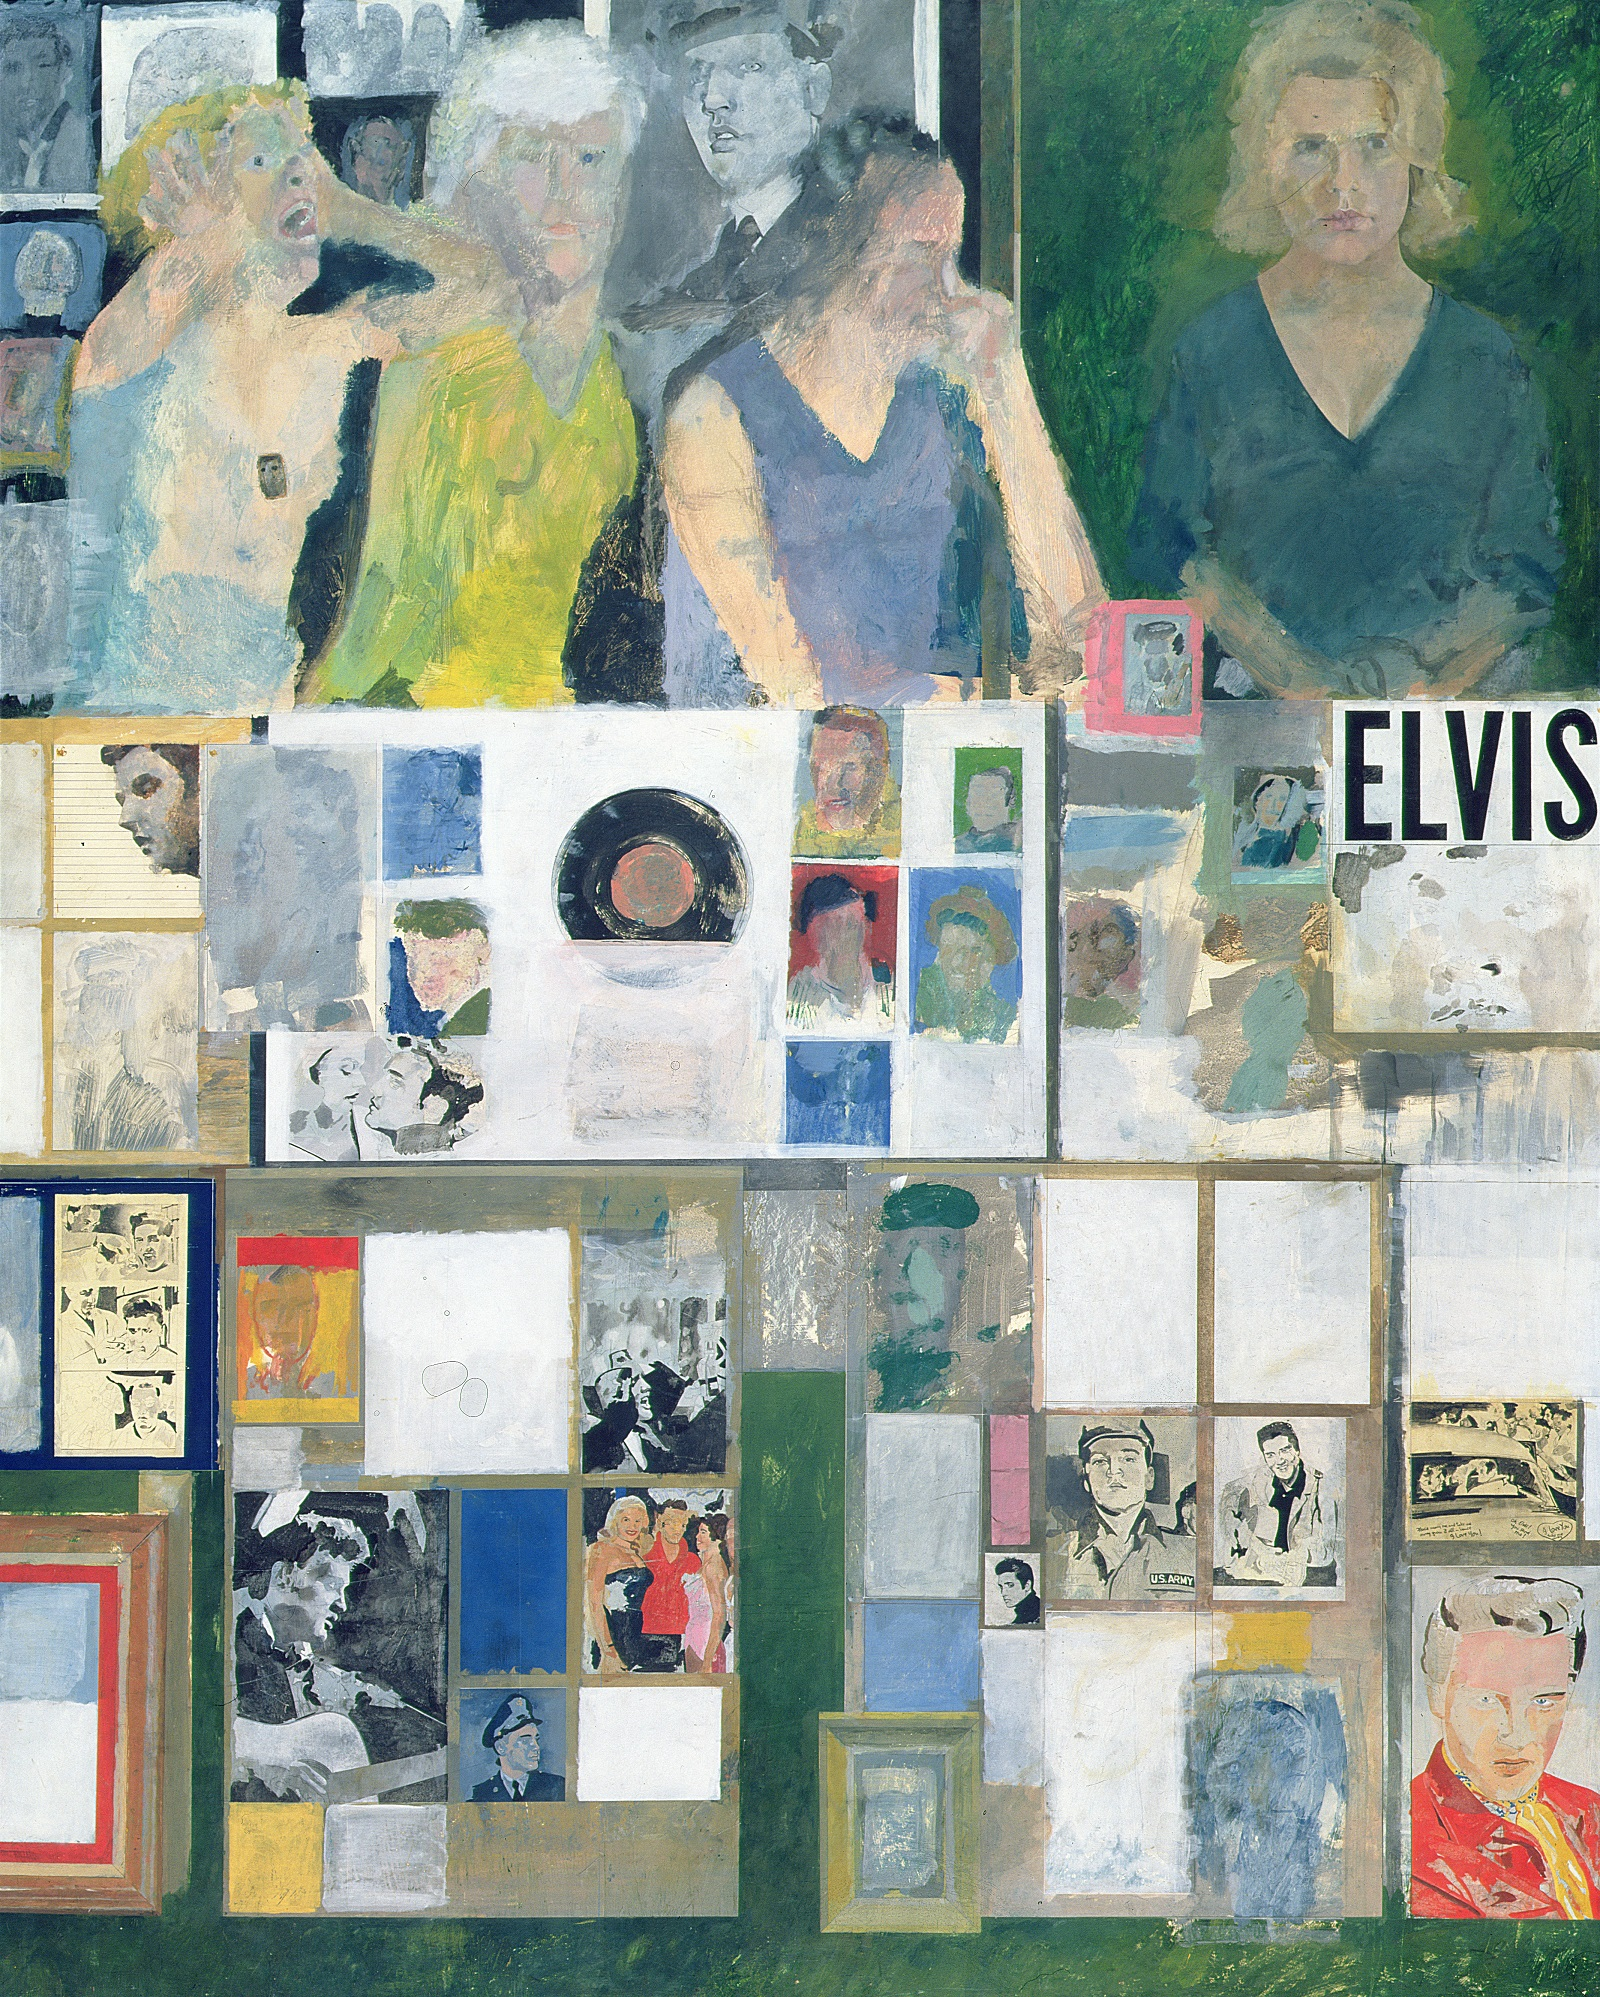 A painting featuring female fans in top third with panels of Elvis pictures and paraphernalia below.